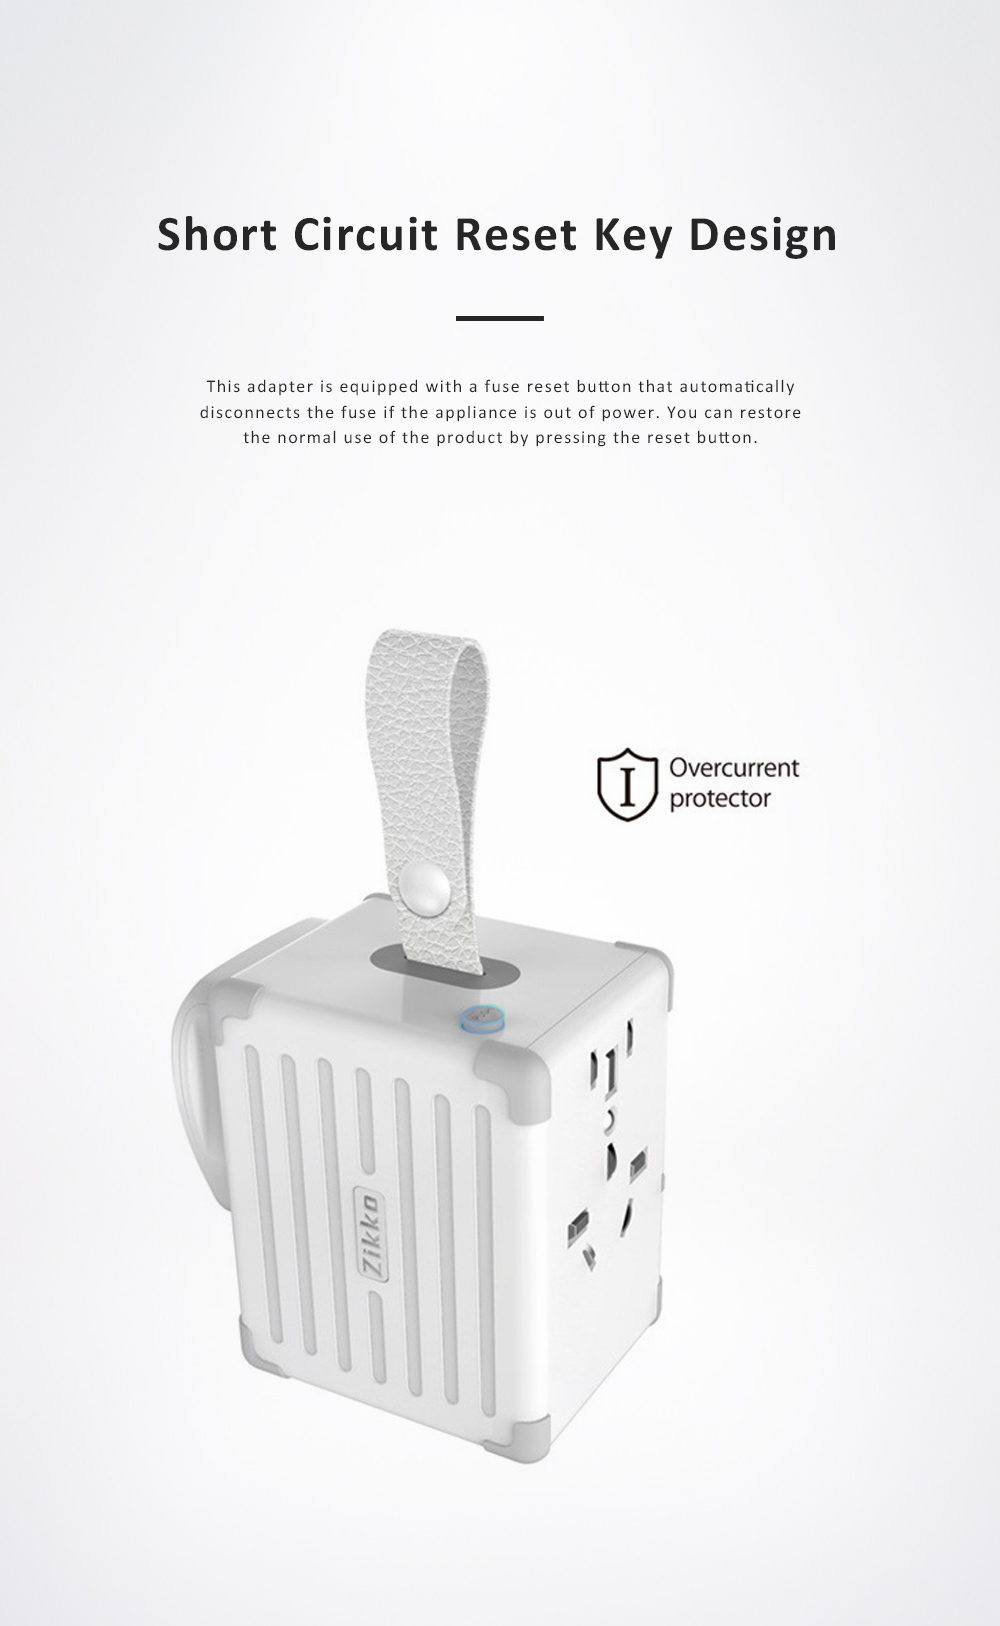 Portable Multifunctional Universal Adaptor Charge-over Plug Travel Abroad Phone Electronic Equipments Charger with 4 USB Ports 8